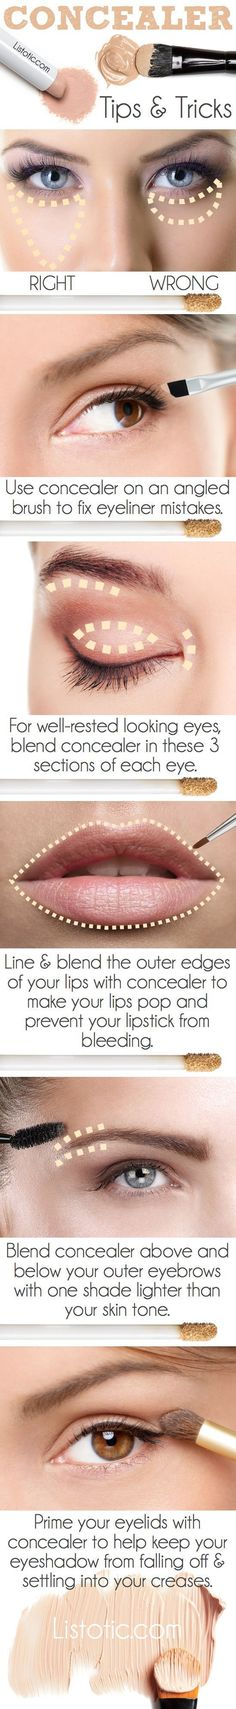 "Beauty Tips & Tricks! See similar posts at <a href=""http://styleonedge.net"" rel=""nofollow"" target=""_blank"">www.styleonedge.net</a>"